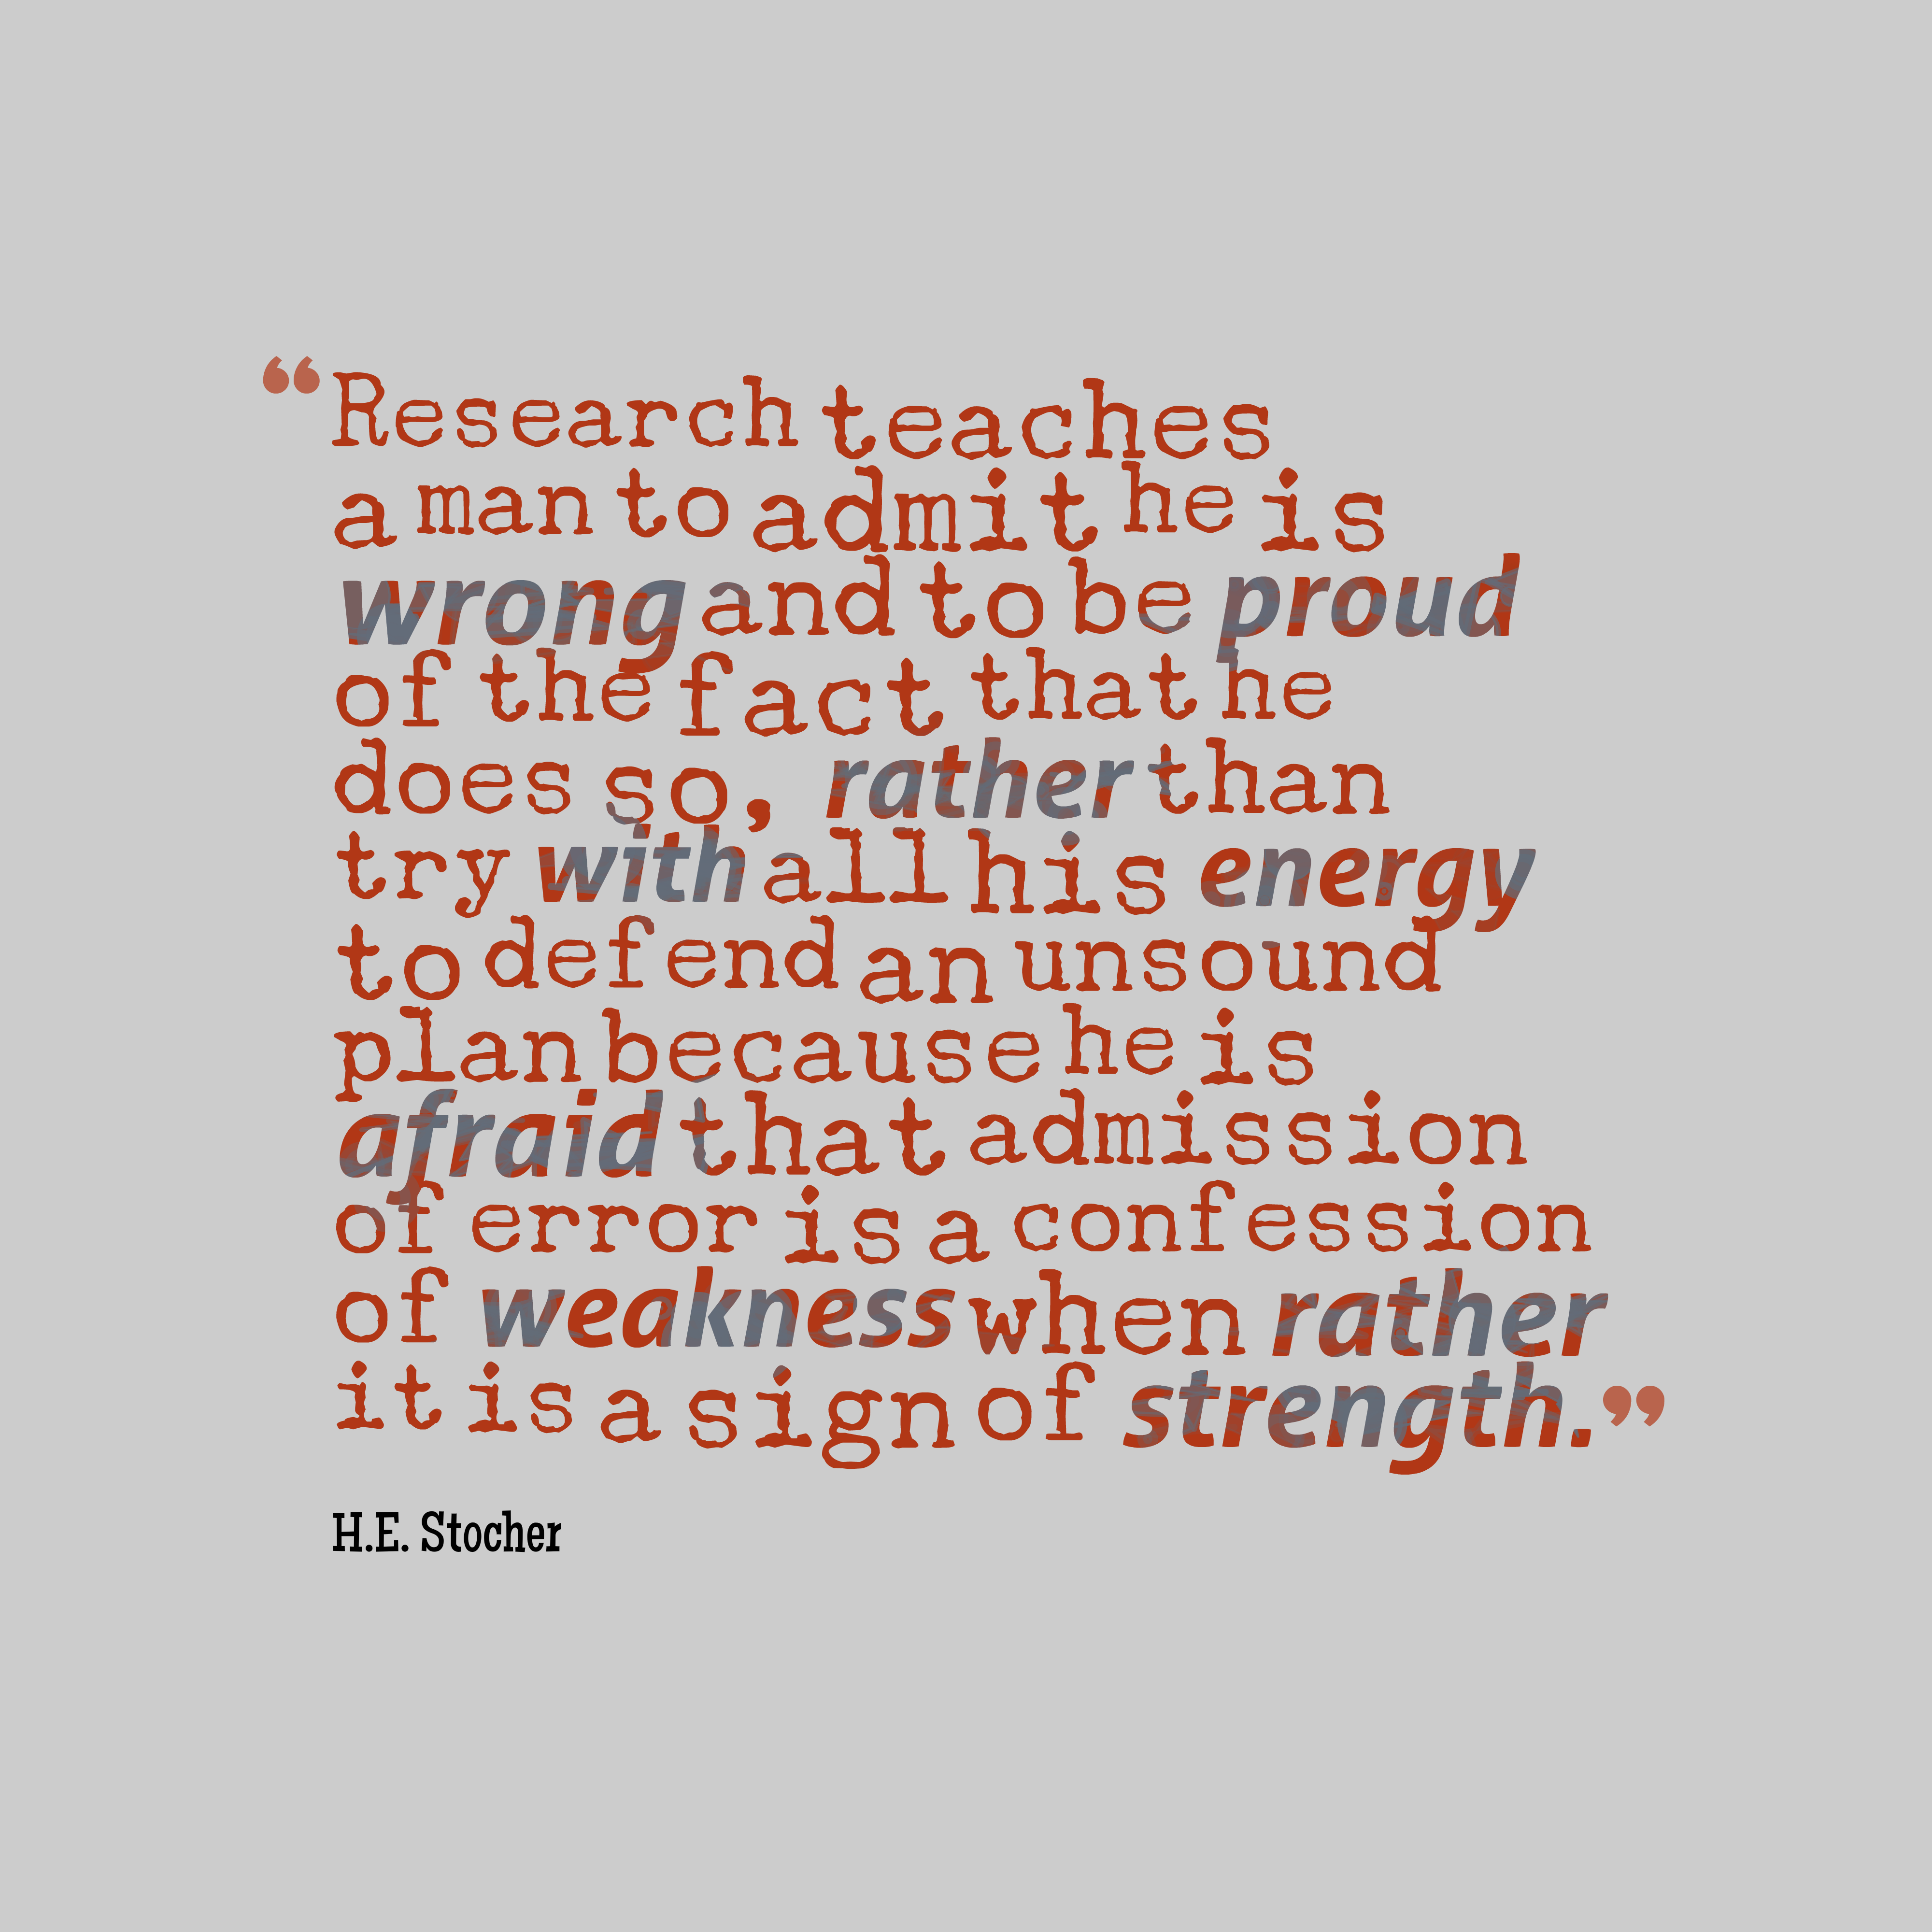 Quotes On Research Prepossessing Picture H.estocher Quote About Research Quotescover